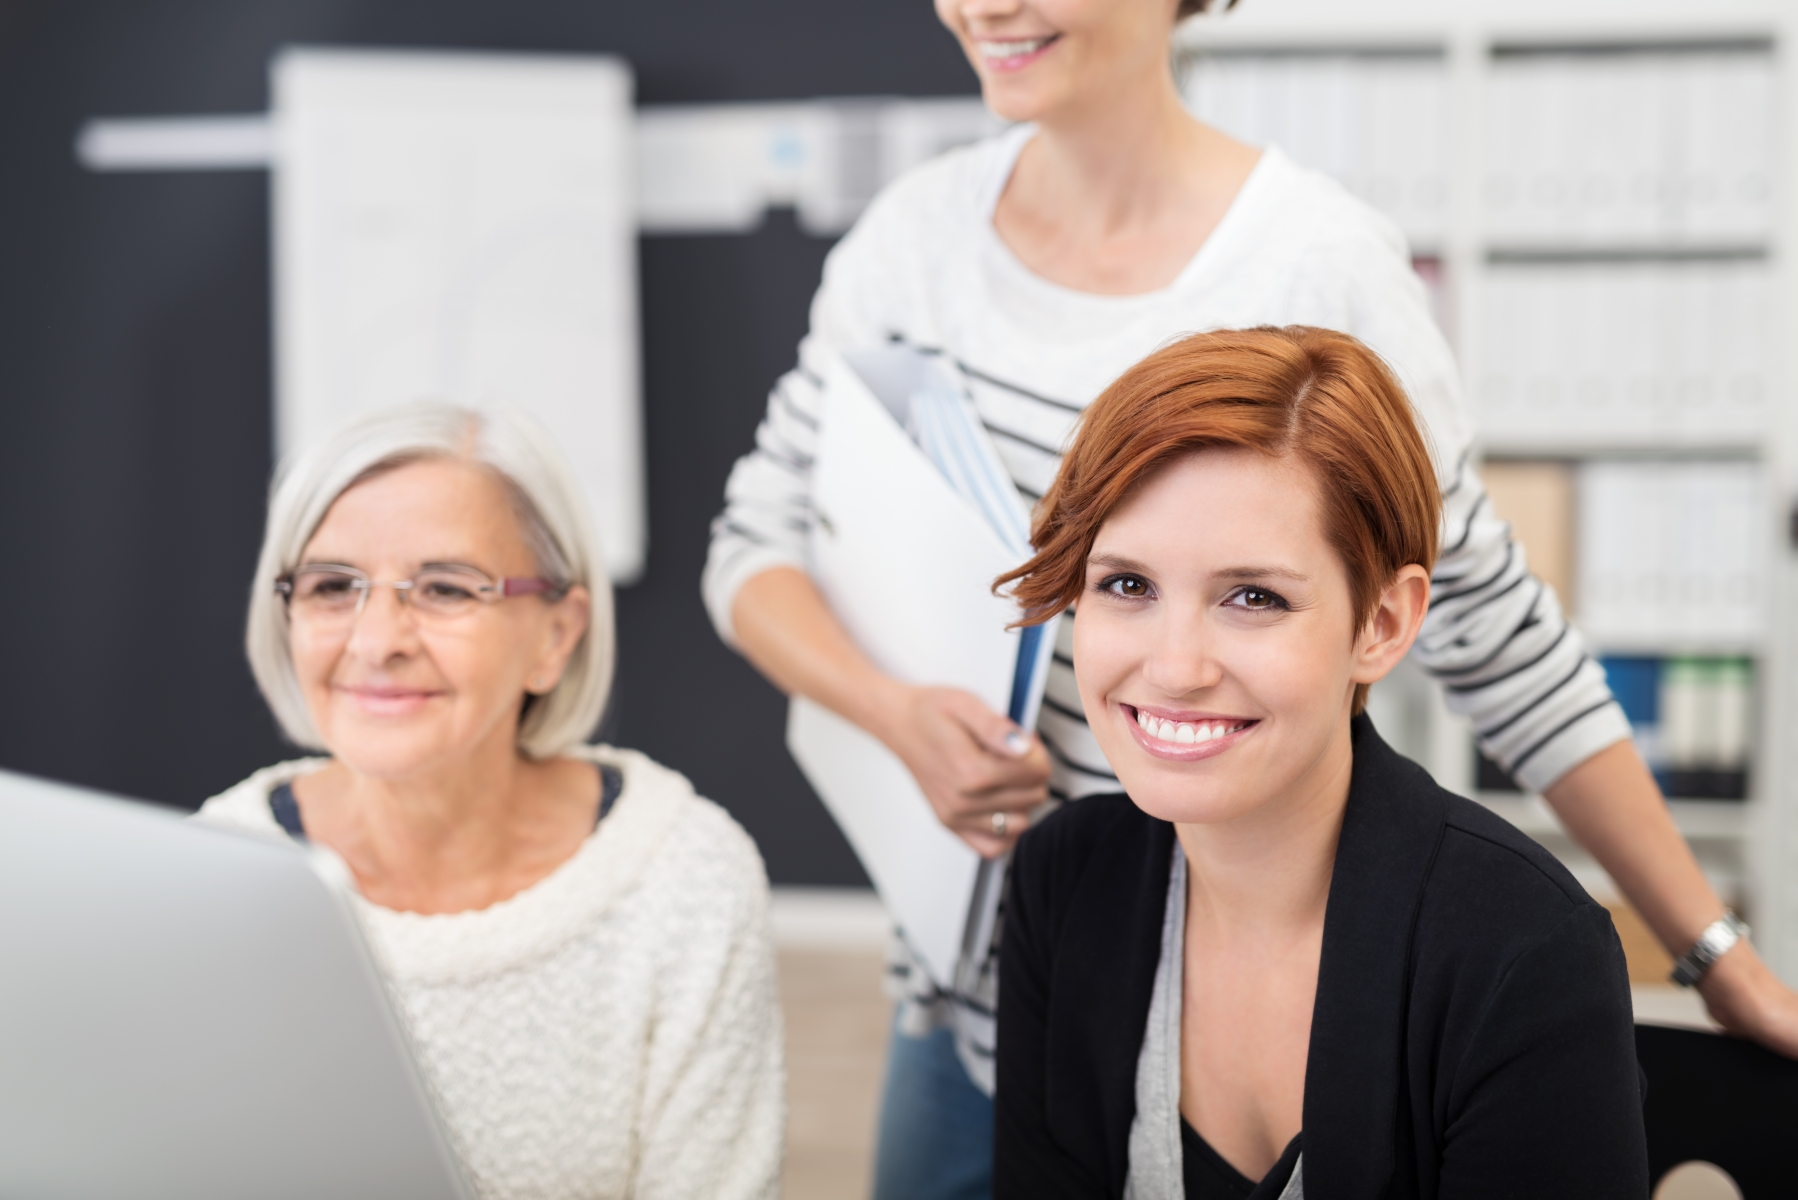 13223959-office-woman-smiles-at-camera-while-in-the-group